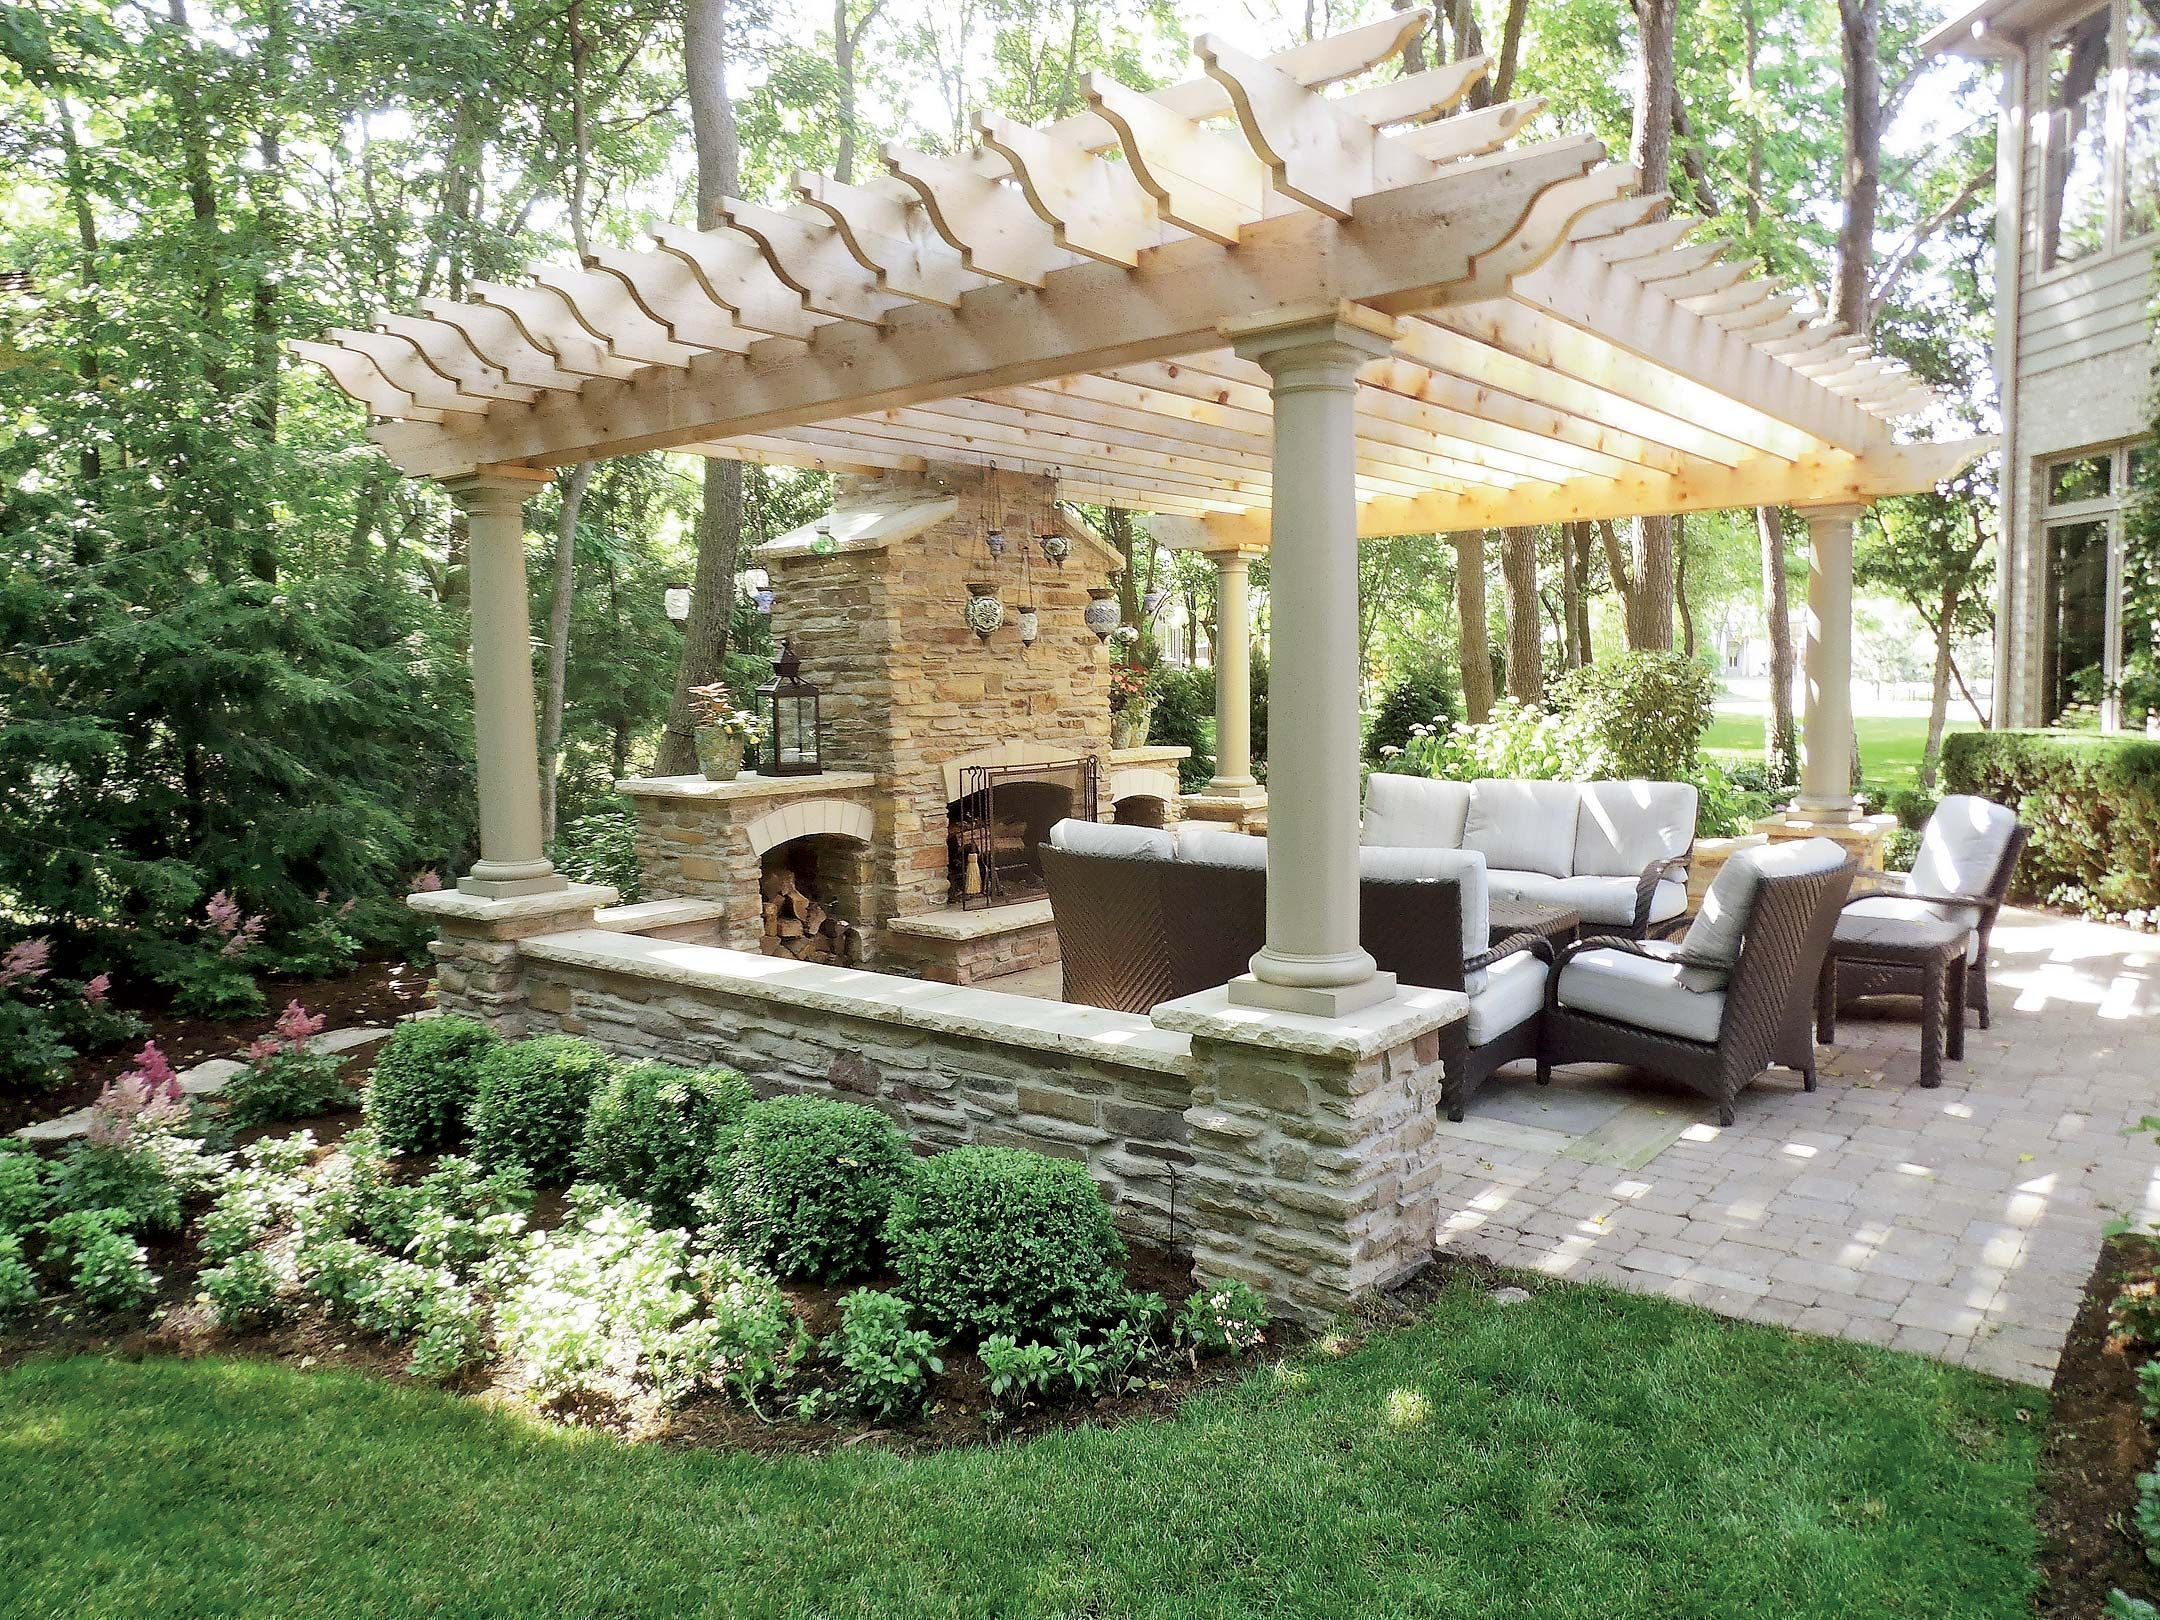 Creative patiooutdoor bar ideas you must try at your backyard